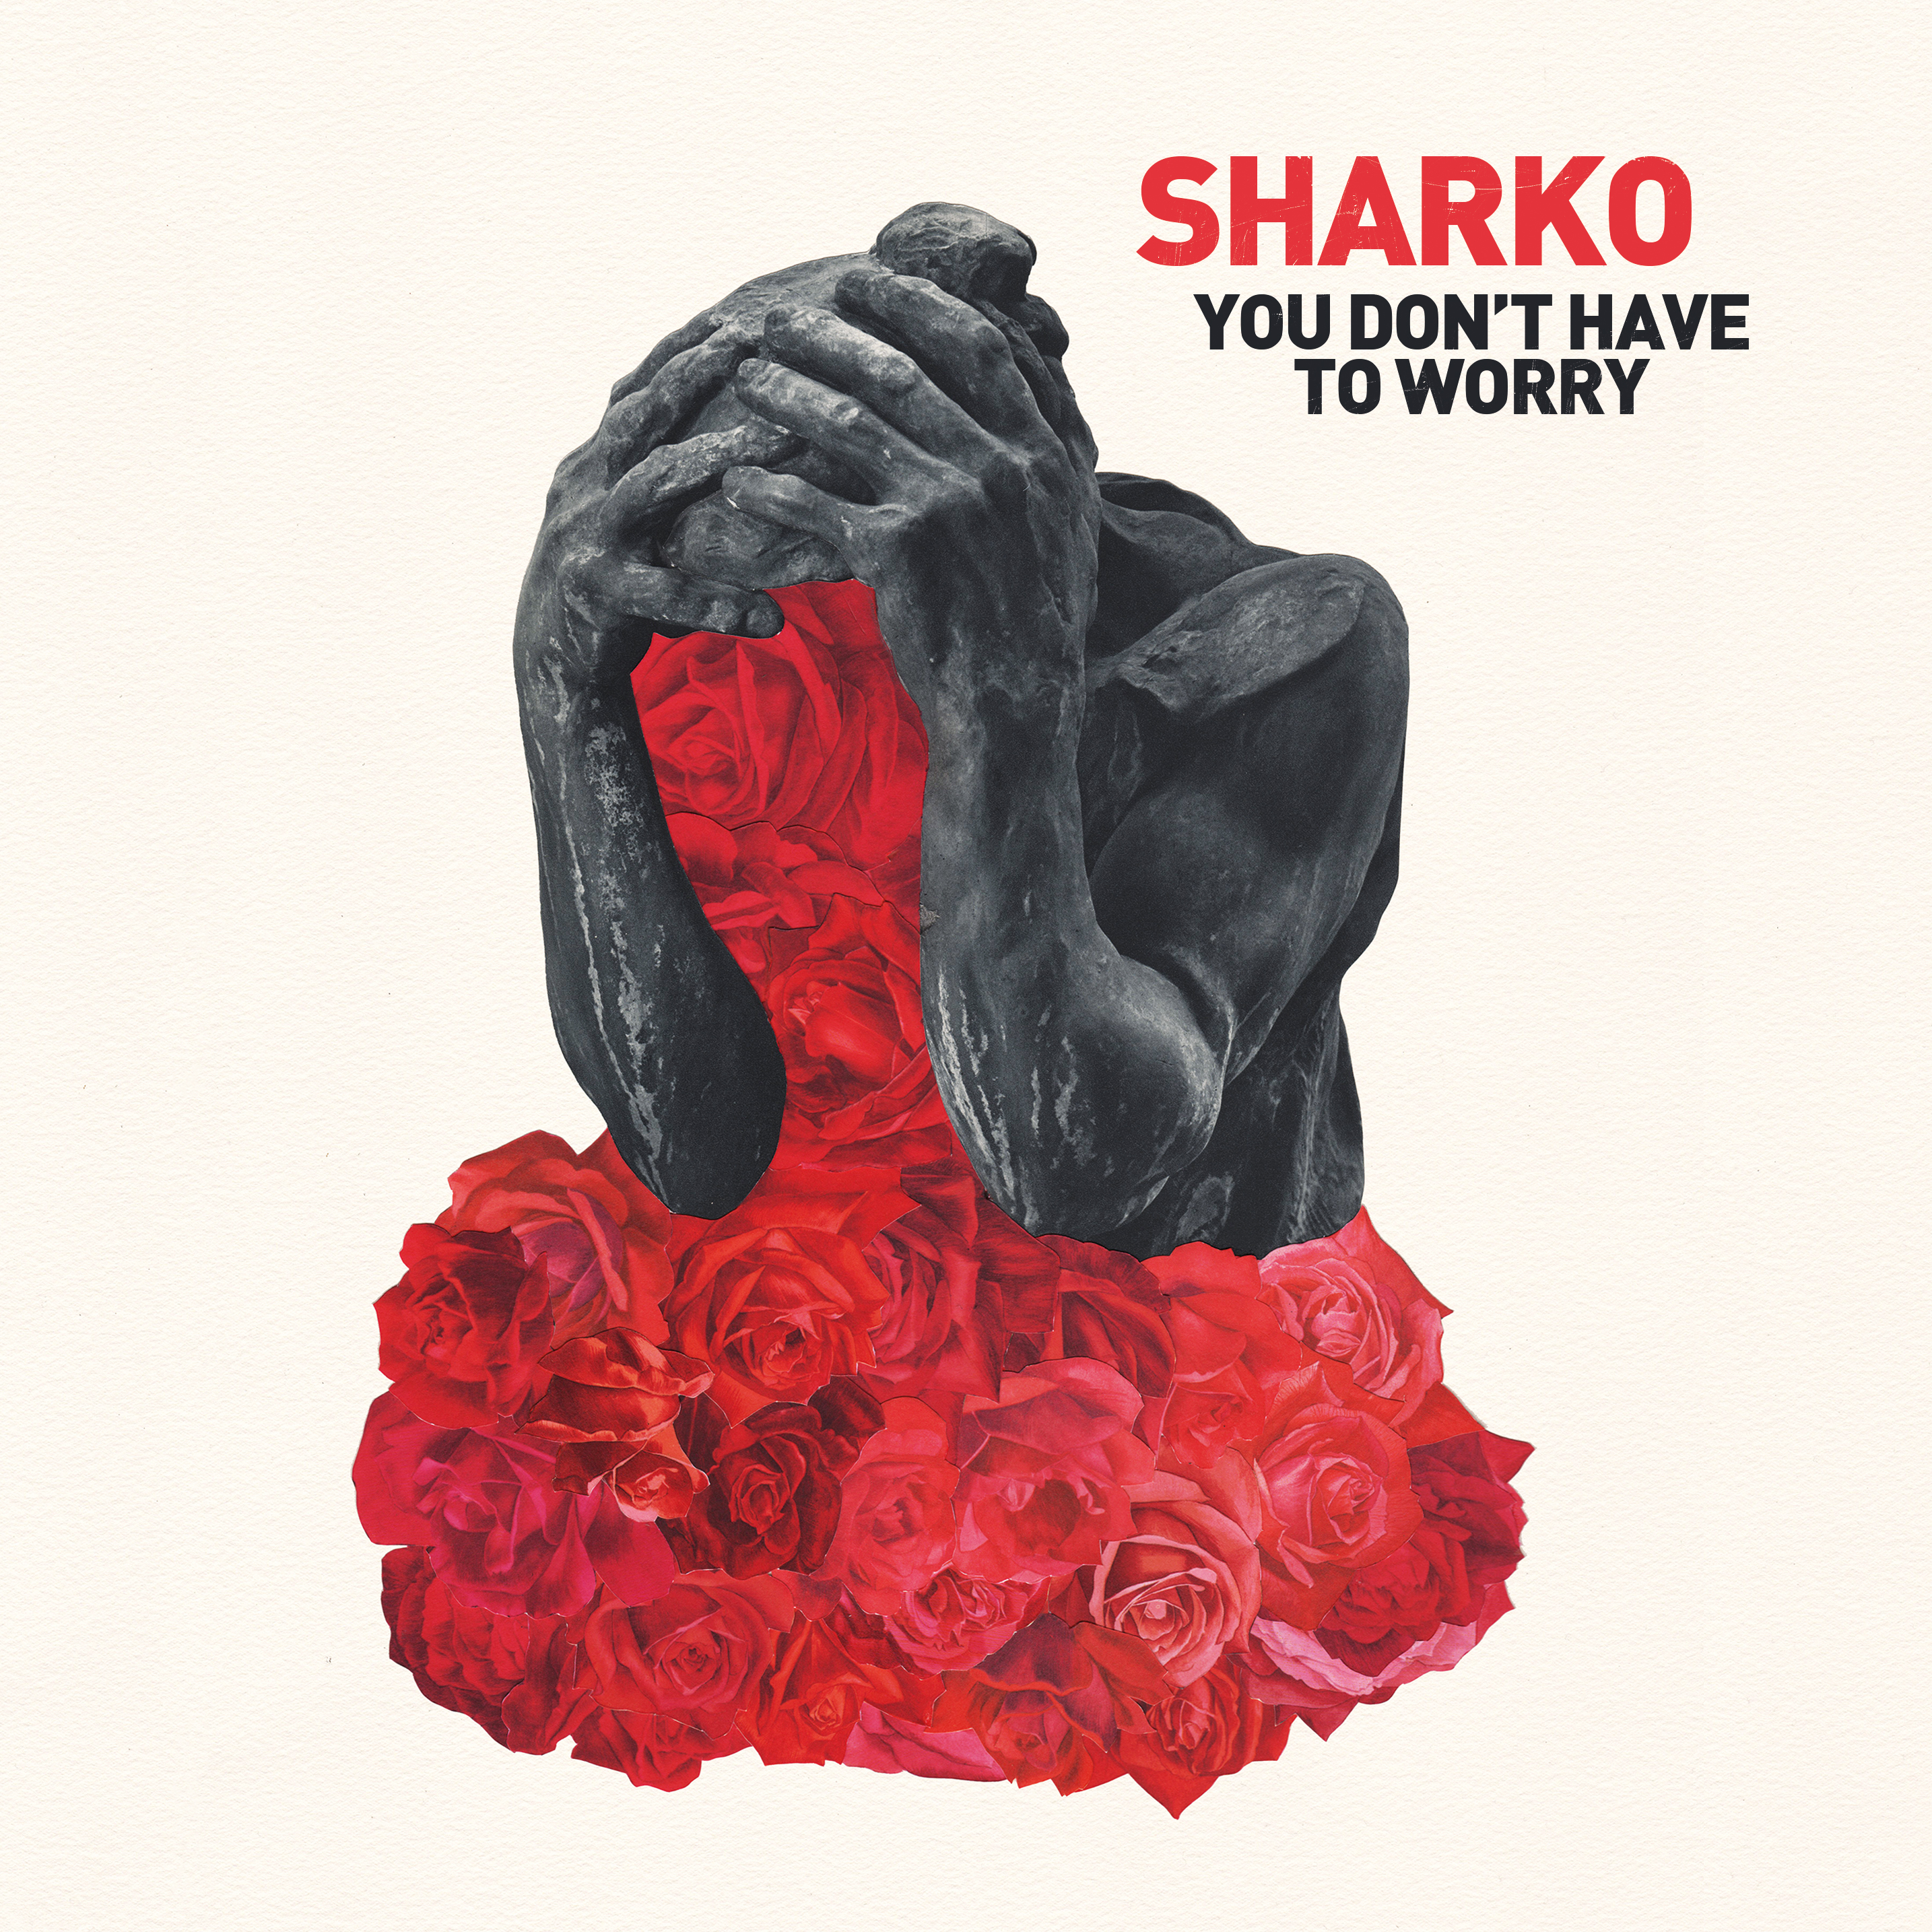 sharko_you_don_t_have_to_worry